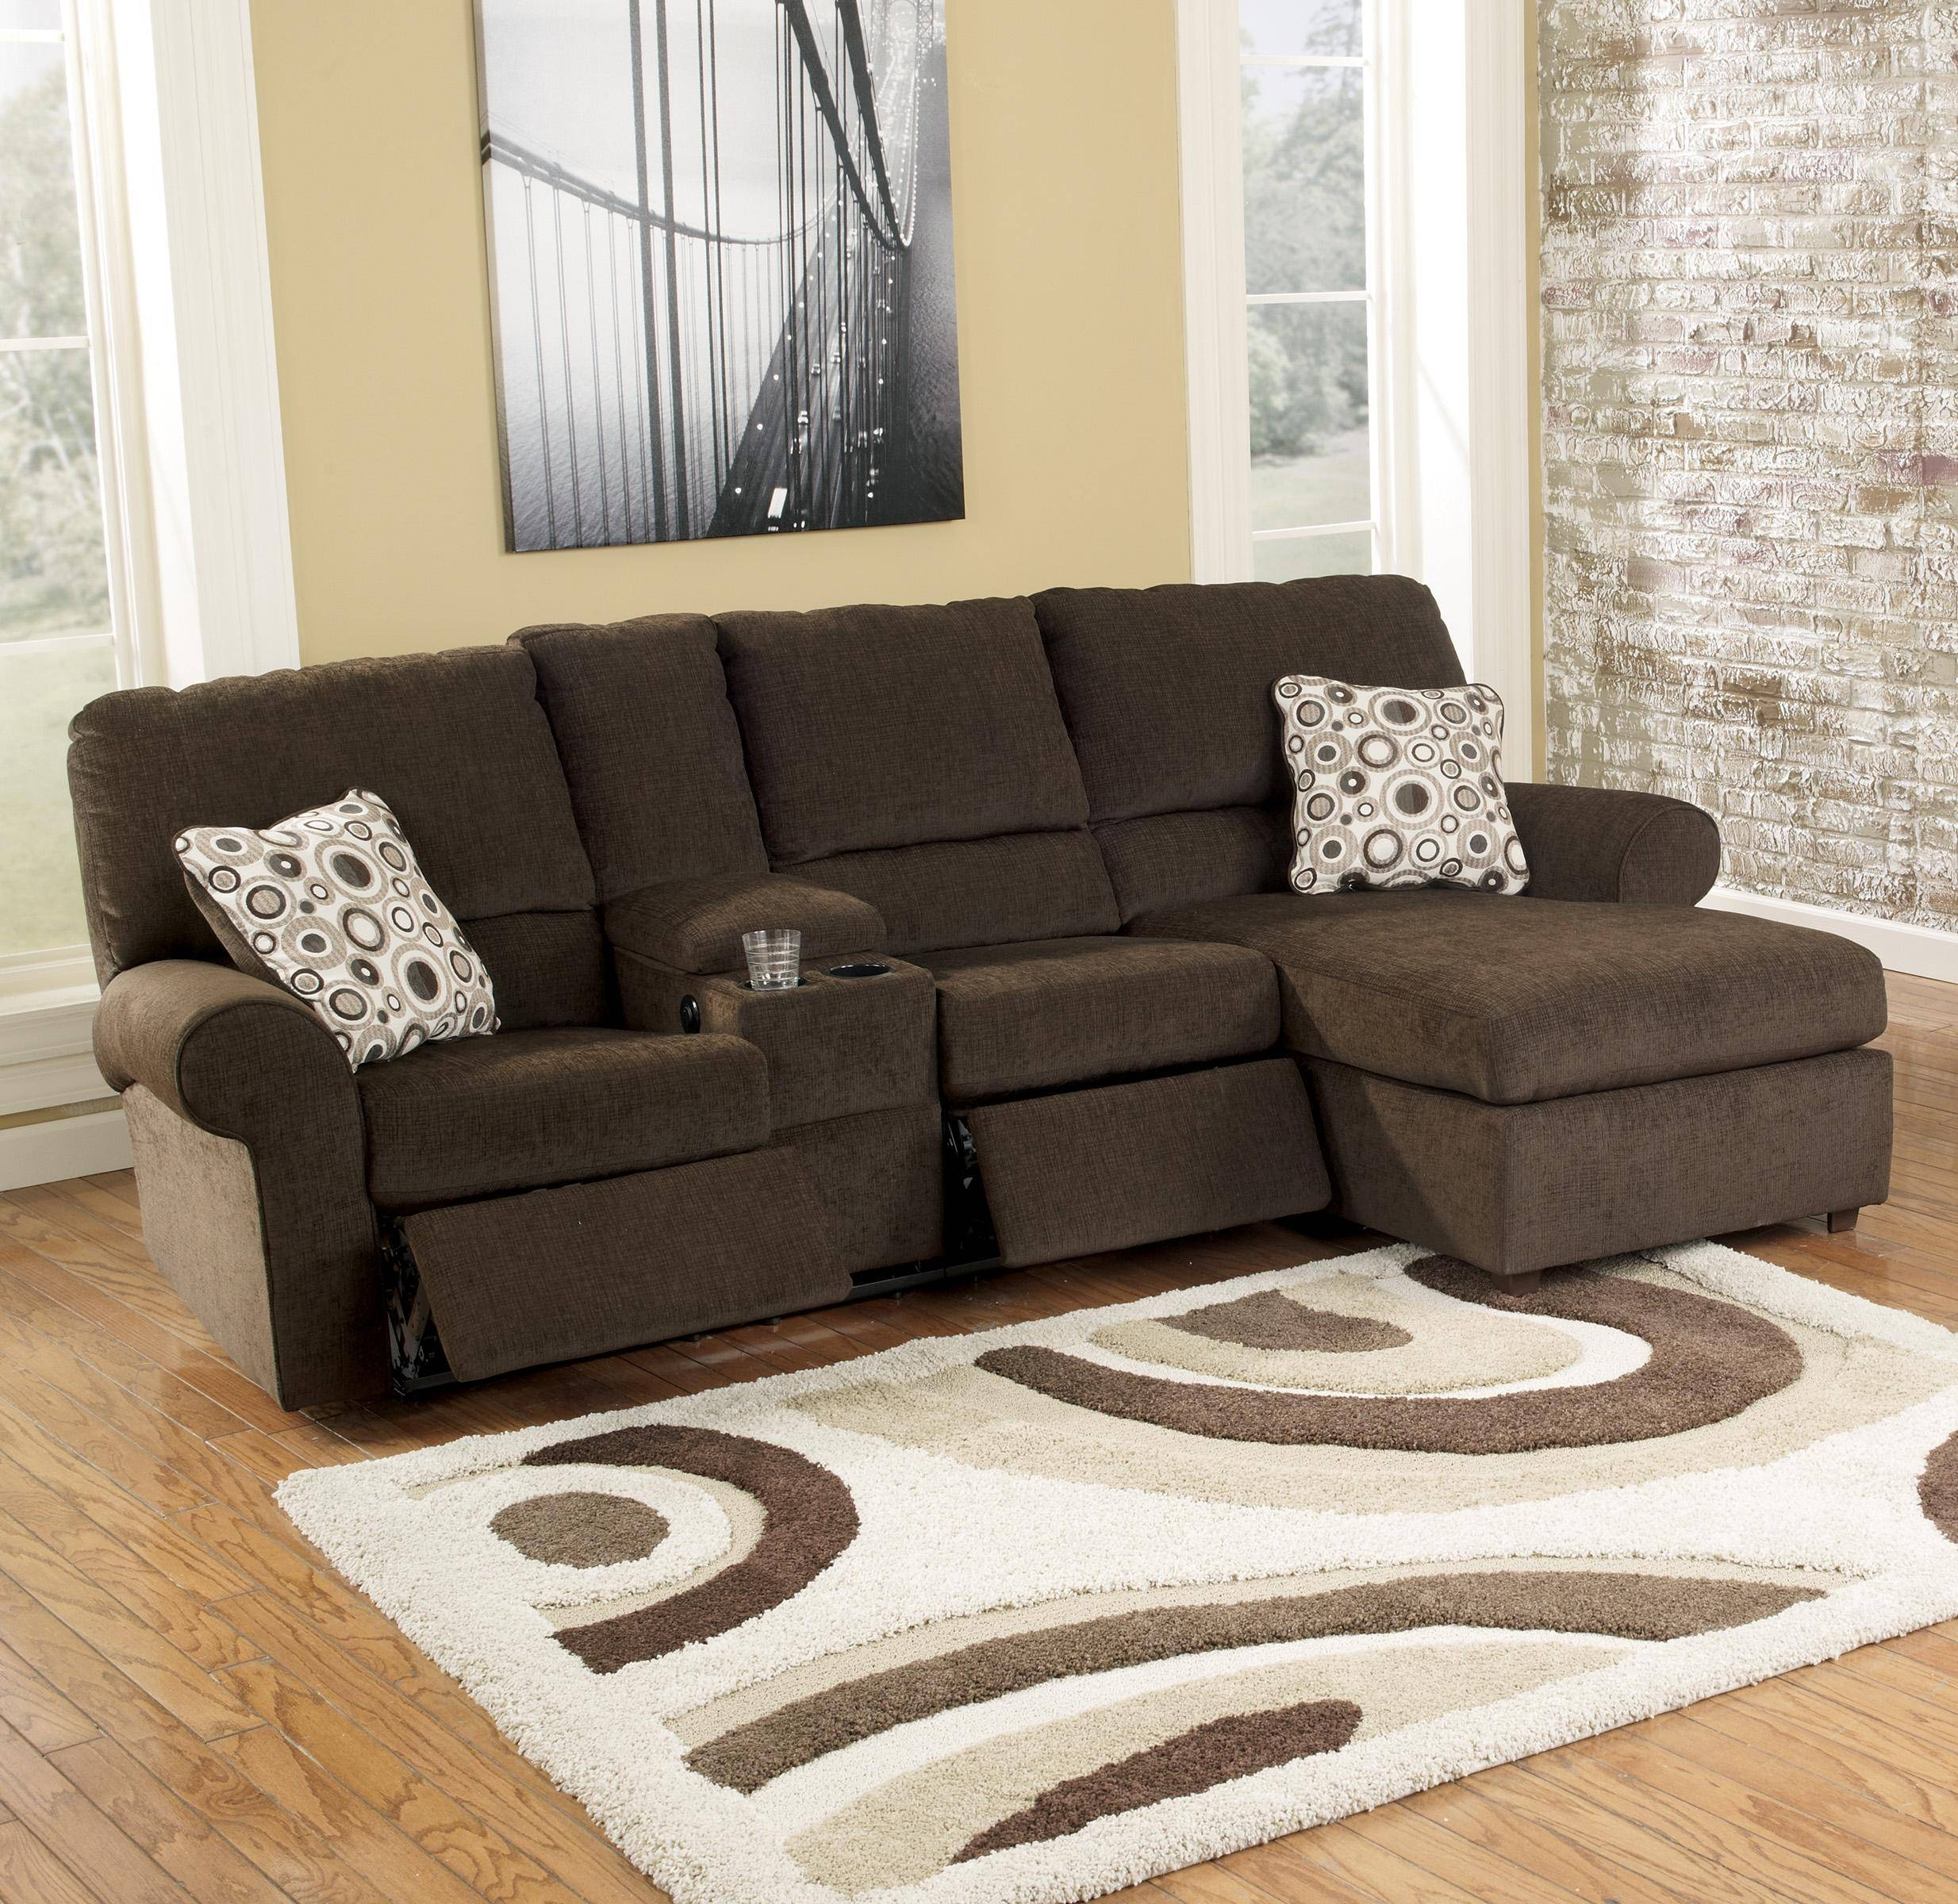 Amazing Sectional Sofa With Chaise Recliner And Sleeper 84 For 3 with 3 Piece Sectional Sleeper Sofa (Image 8 of 30)